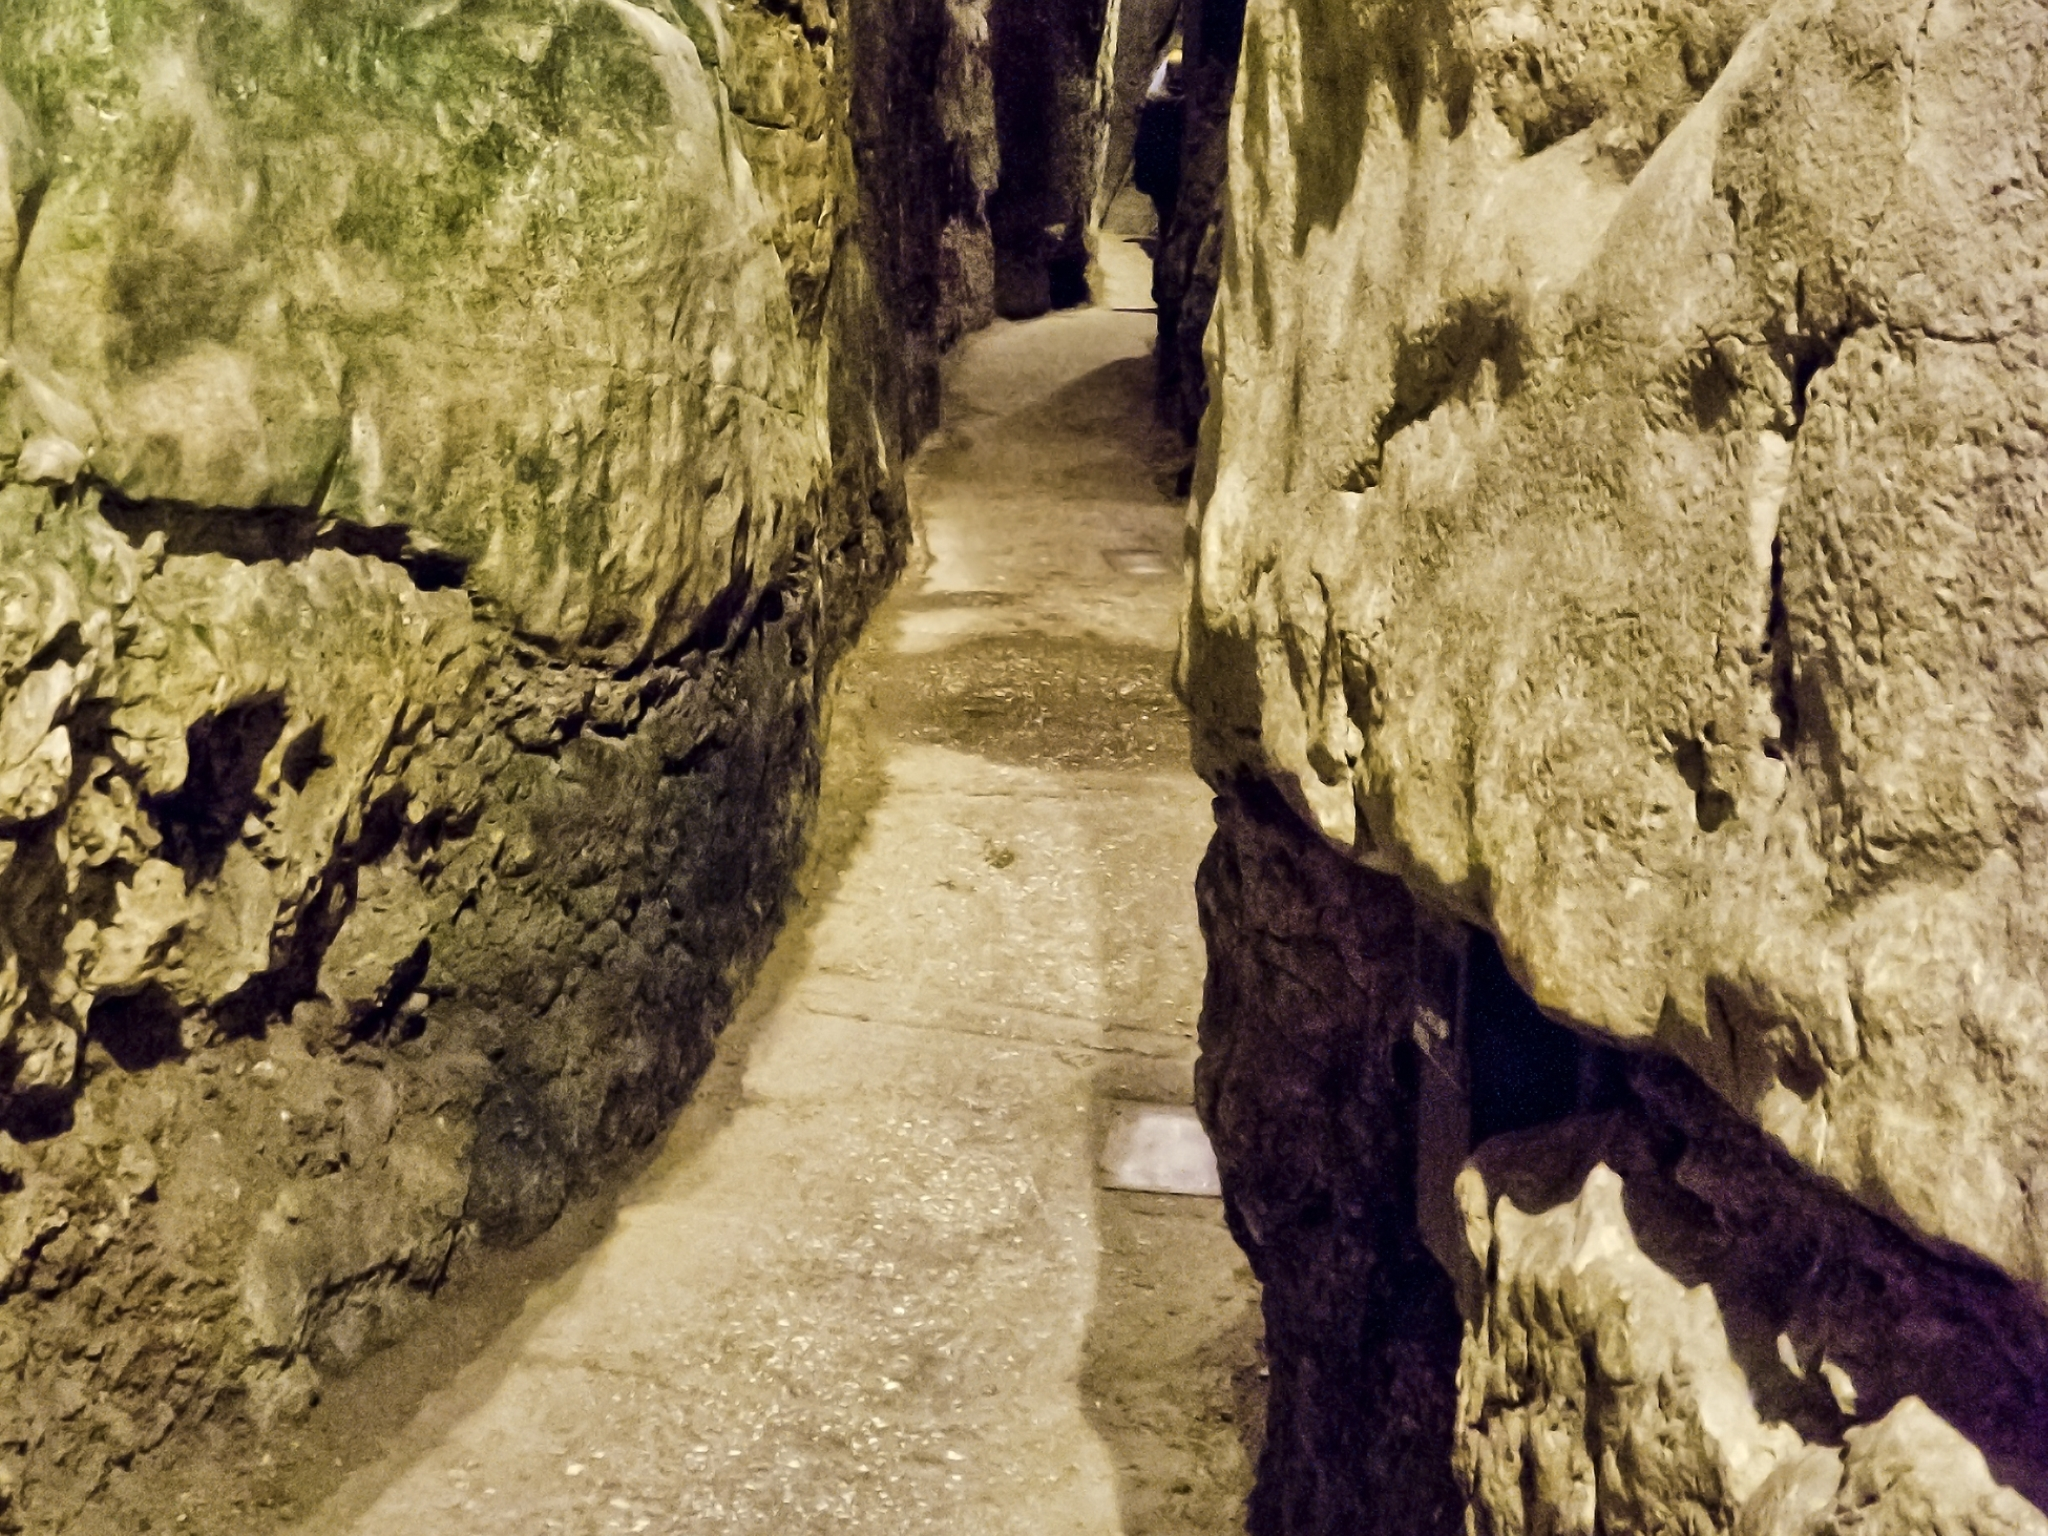 The Kotel Tunels